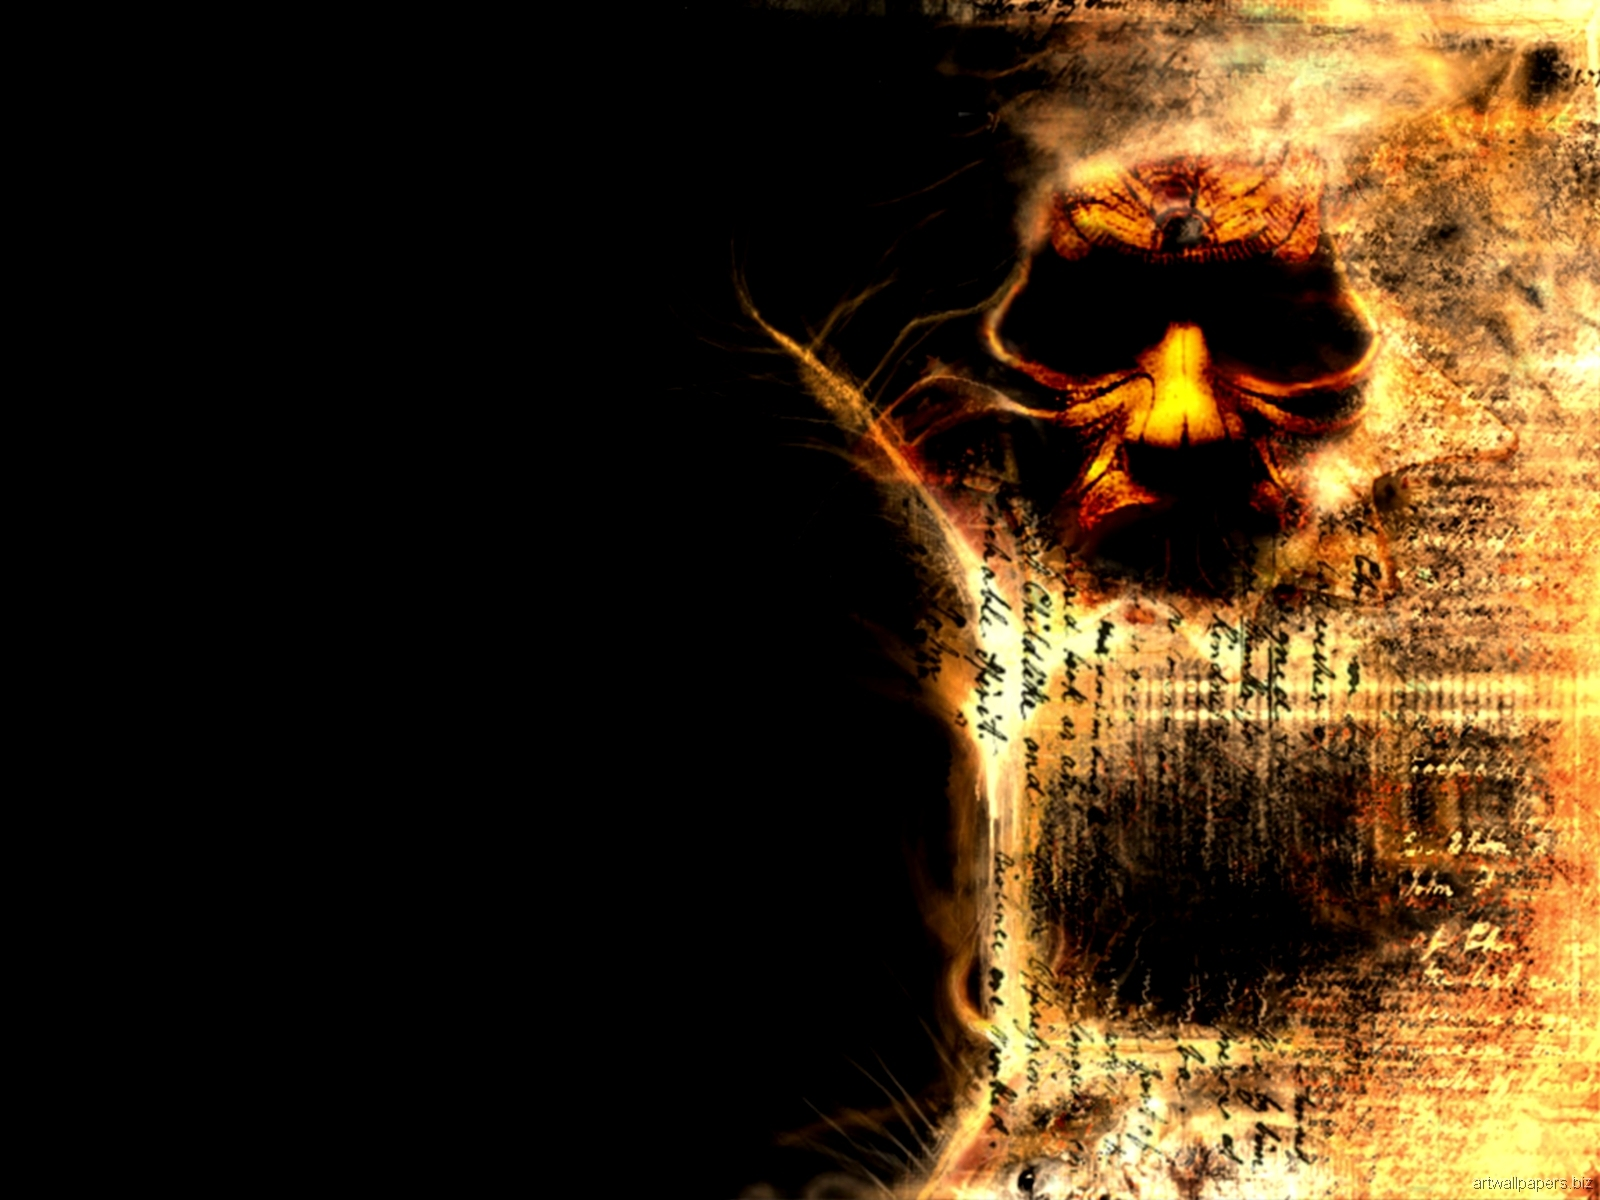 Skull Wallpaper Skull Wallpapers Art Desktop Wallpapers 1600x1200 1600x1200